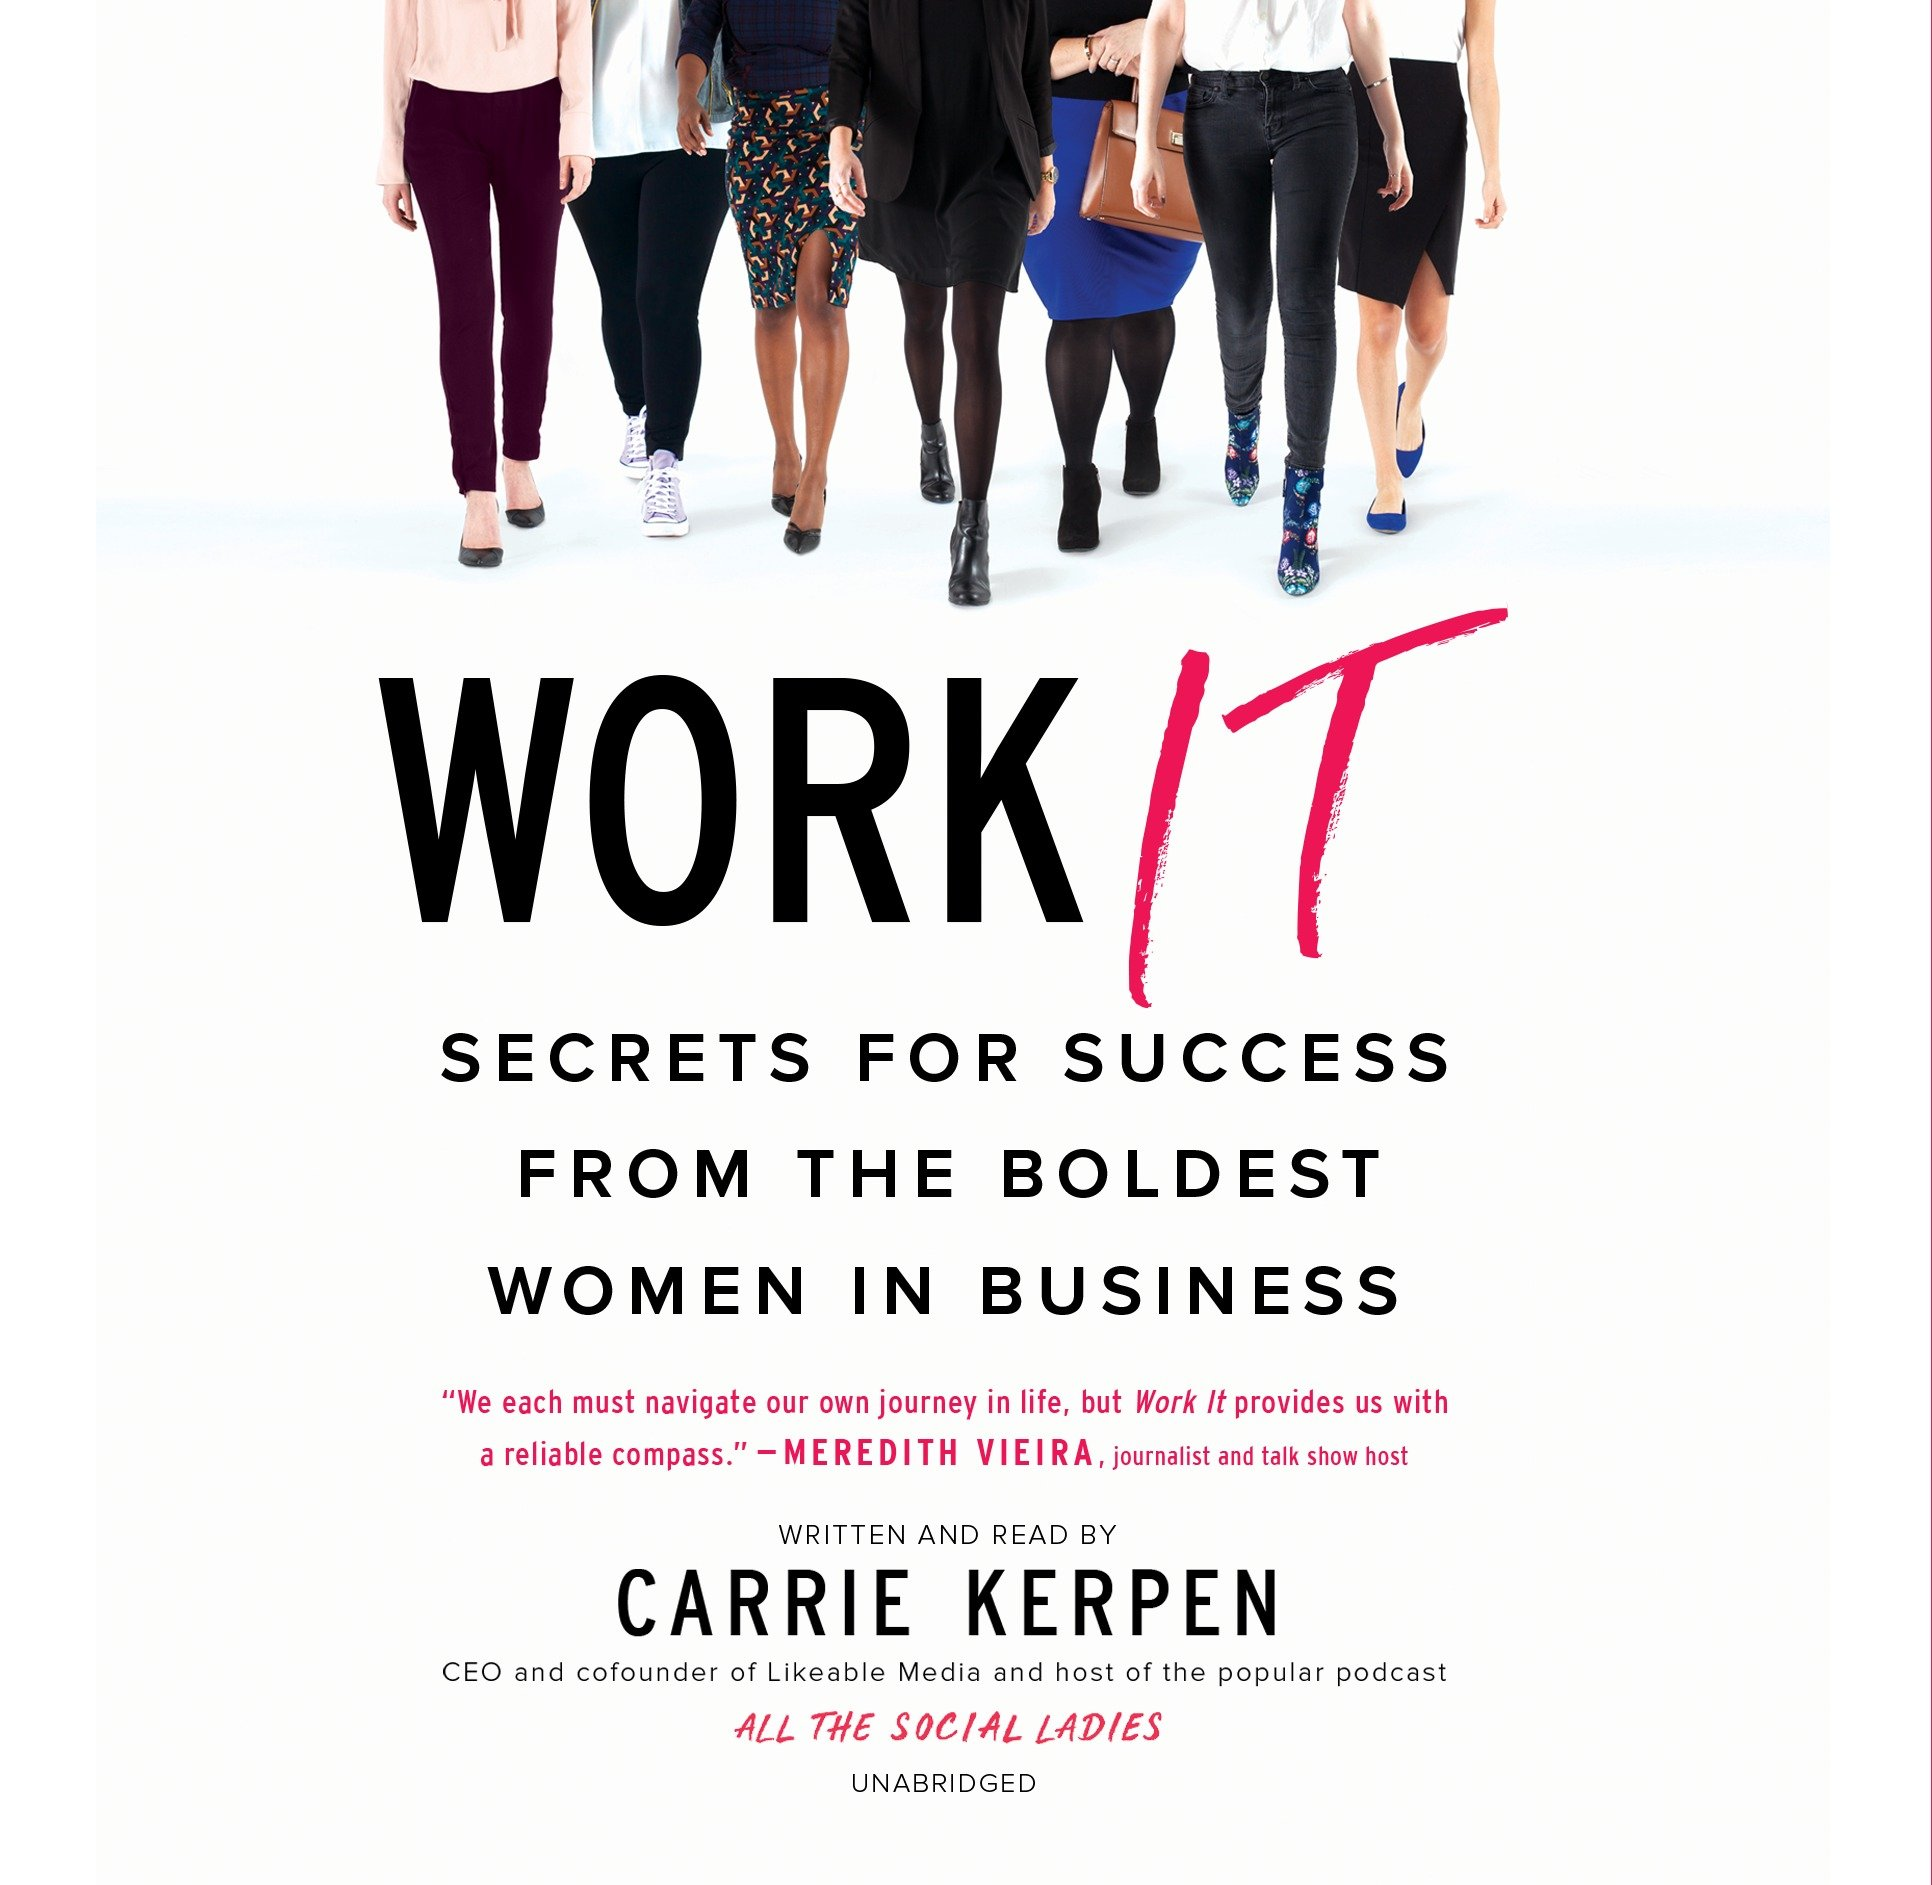 Work It: Secrets for Success from Badass Women in Business - Library Edition pdf